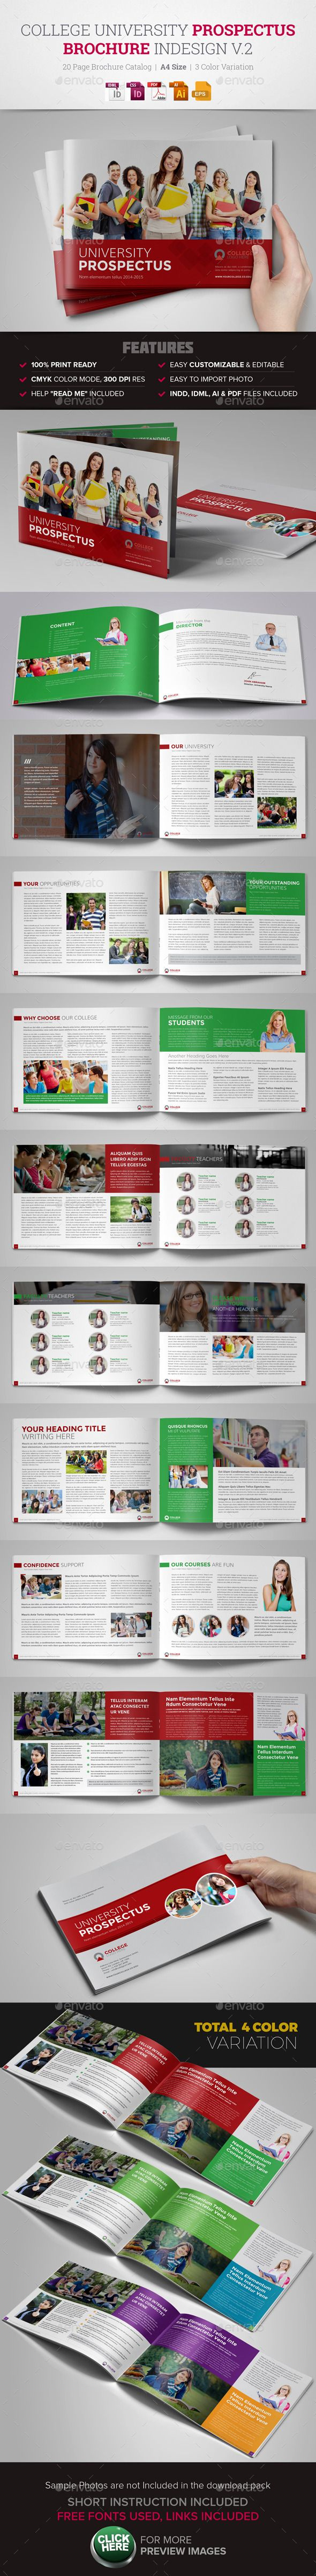 College University Prospectus Brochure v2 – University Brochure Template